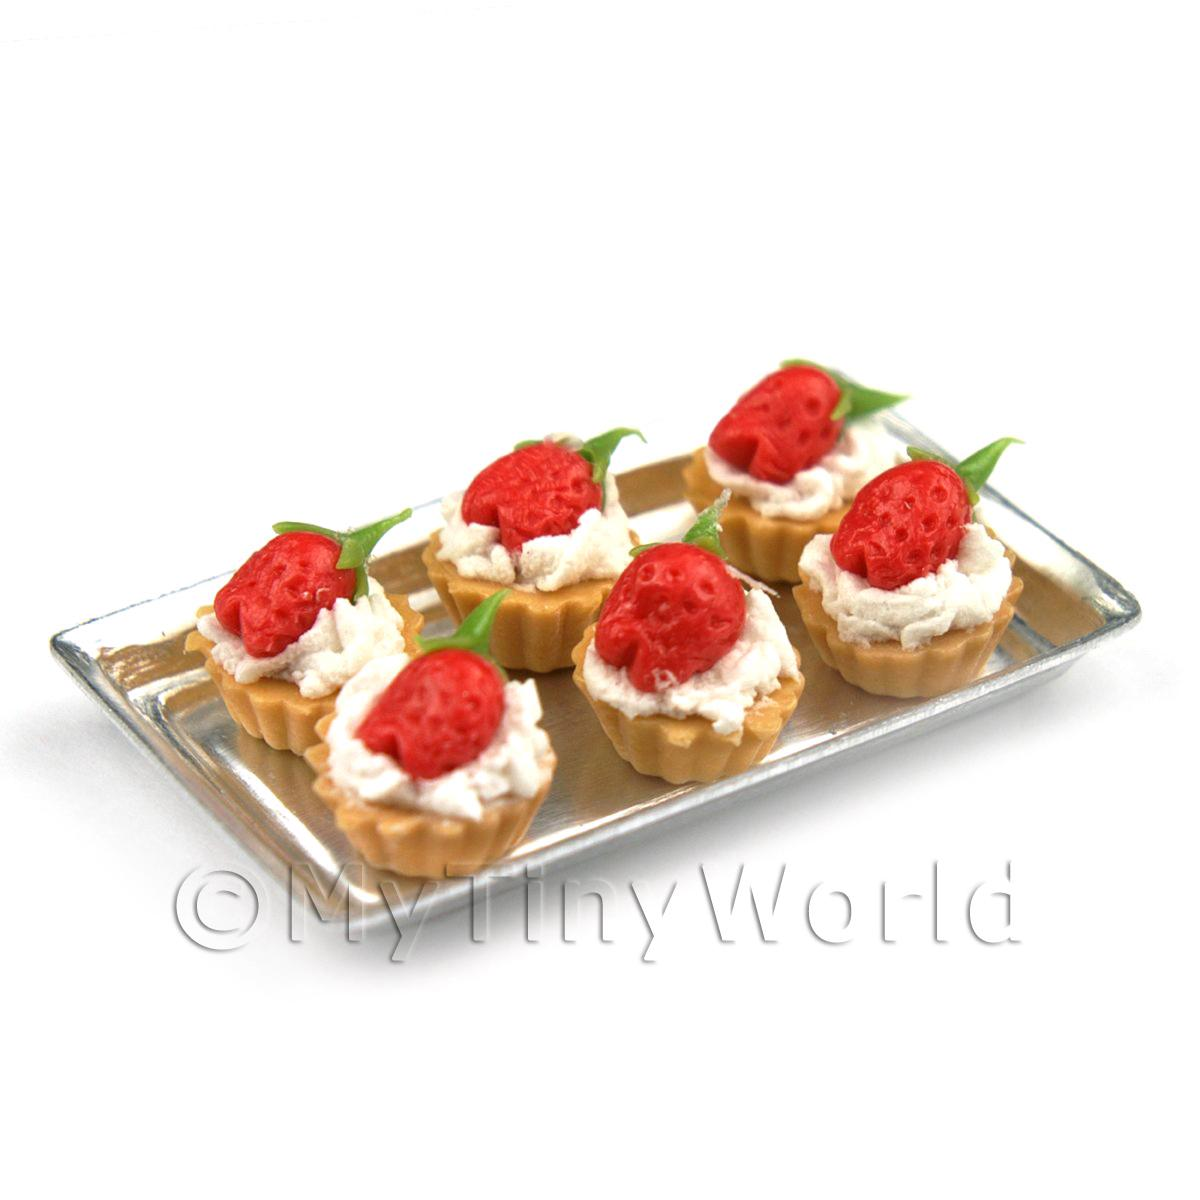 6 Loose Dolls House Miniature  Strawberry and Cream Tarts on a Tray